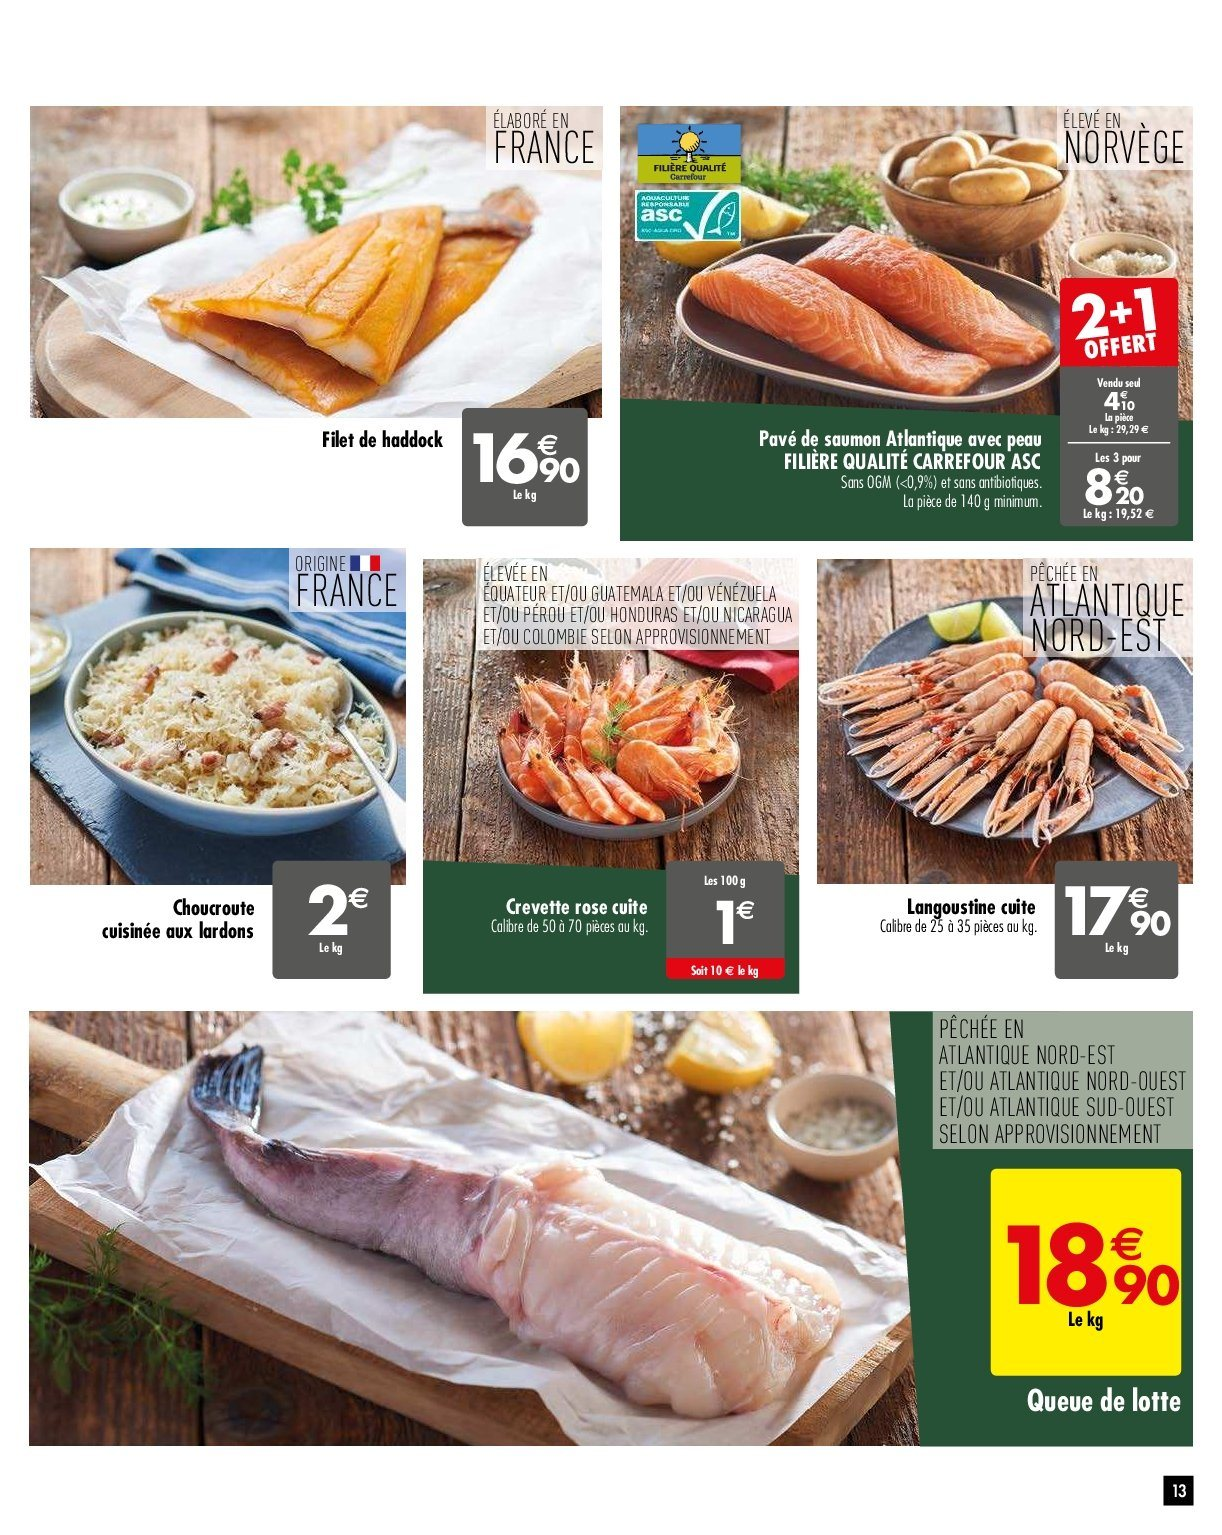 Catalogue Carrefour - 05.02.2019 - 11.02.2019. Page 13.